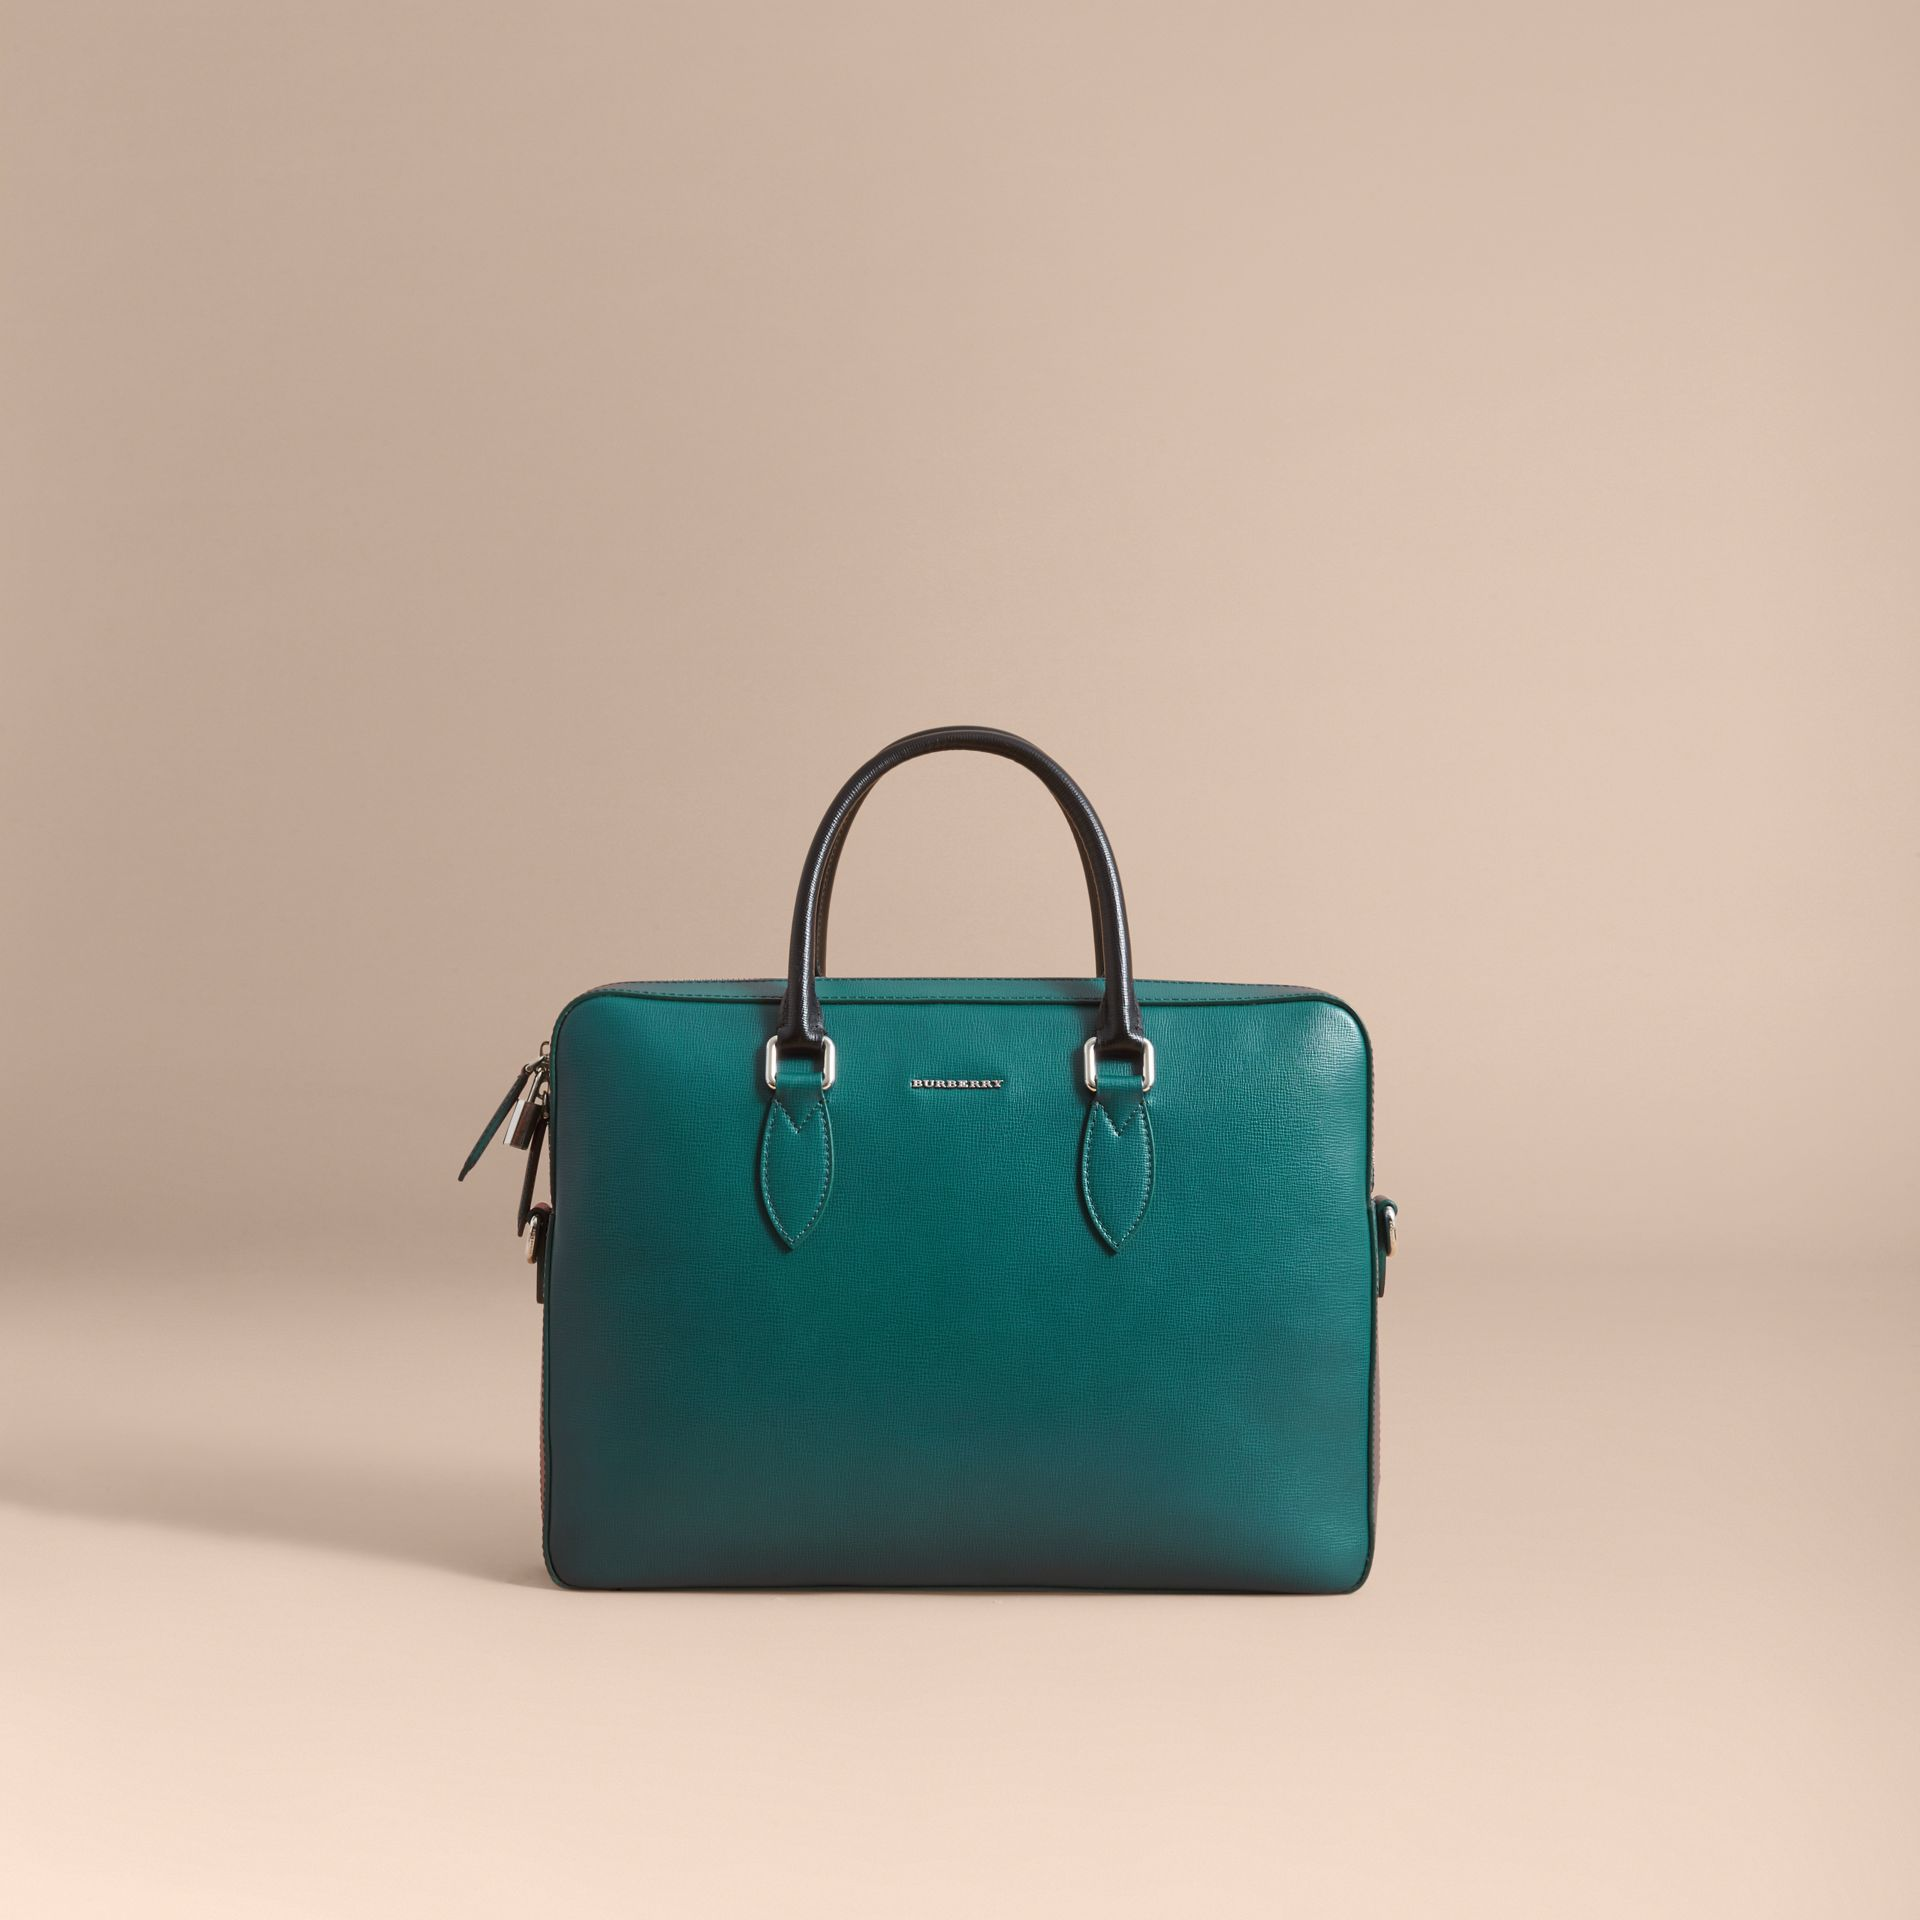 London Leather Briefcase in Dark Teal/black - Men | Burberry - gallery image 8